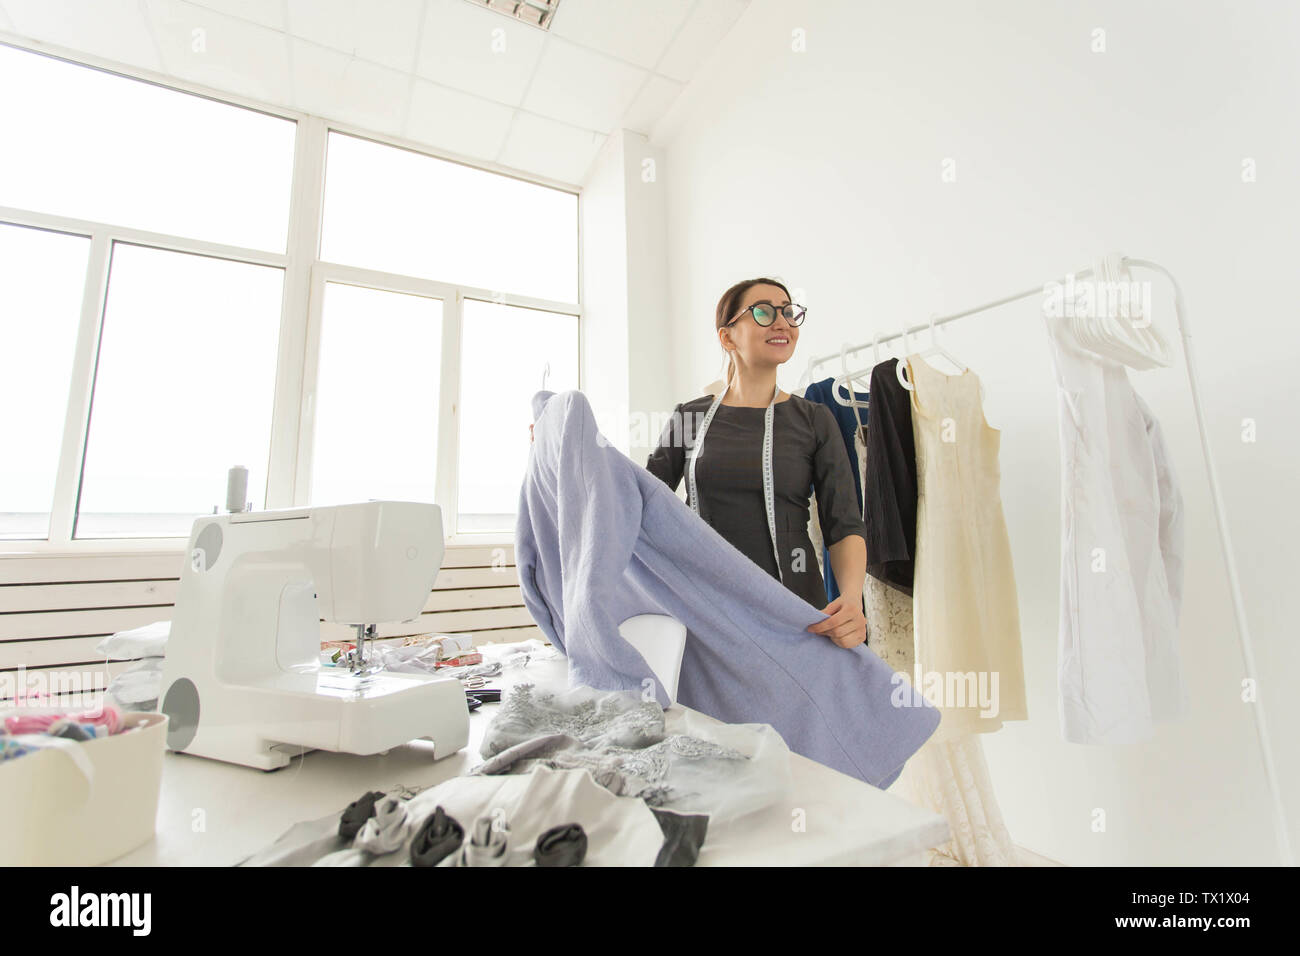 Dressmaker Fashion Designer And Tailor Concept Talented Young Designer Choosing Clothing For New Future Collection Standing In Own Showroom Stock Photo Alamy